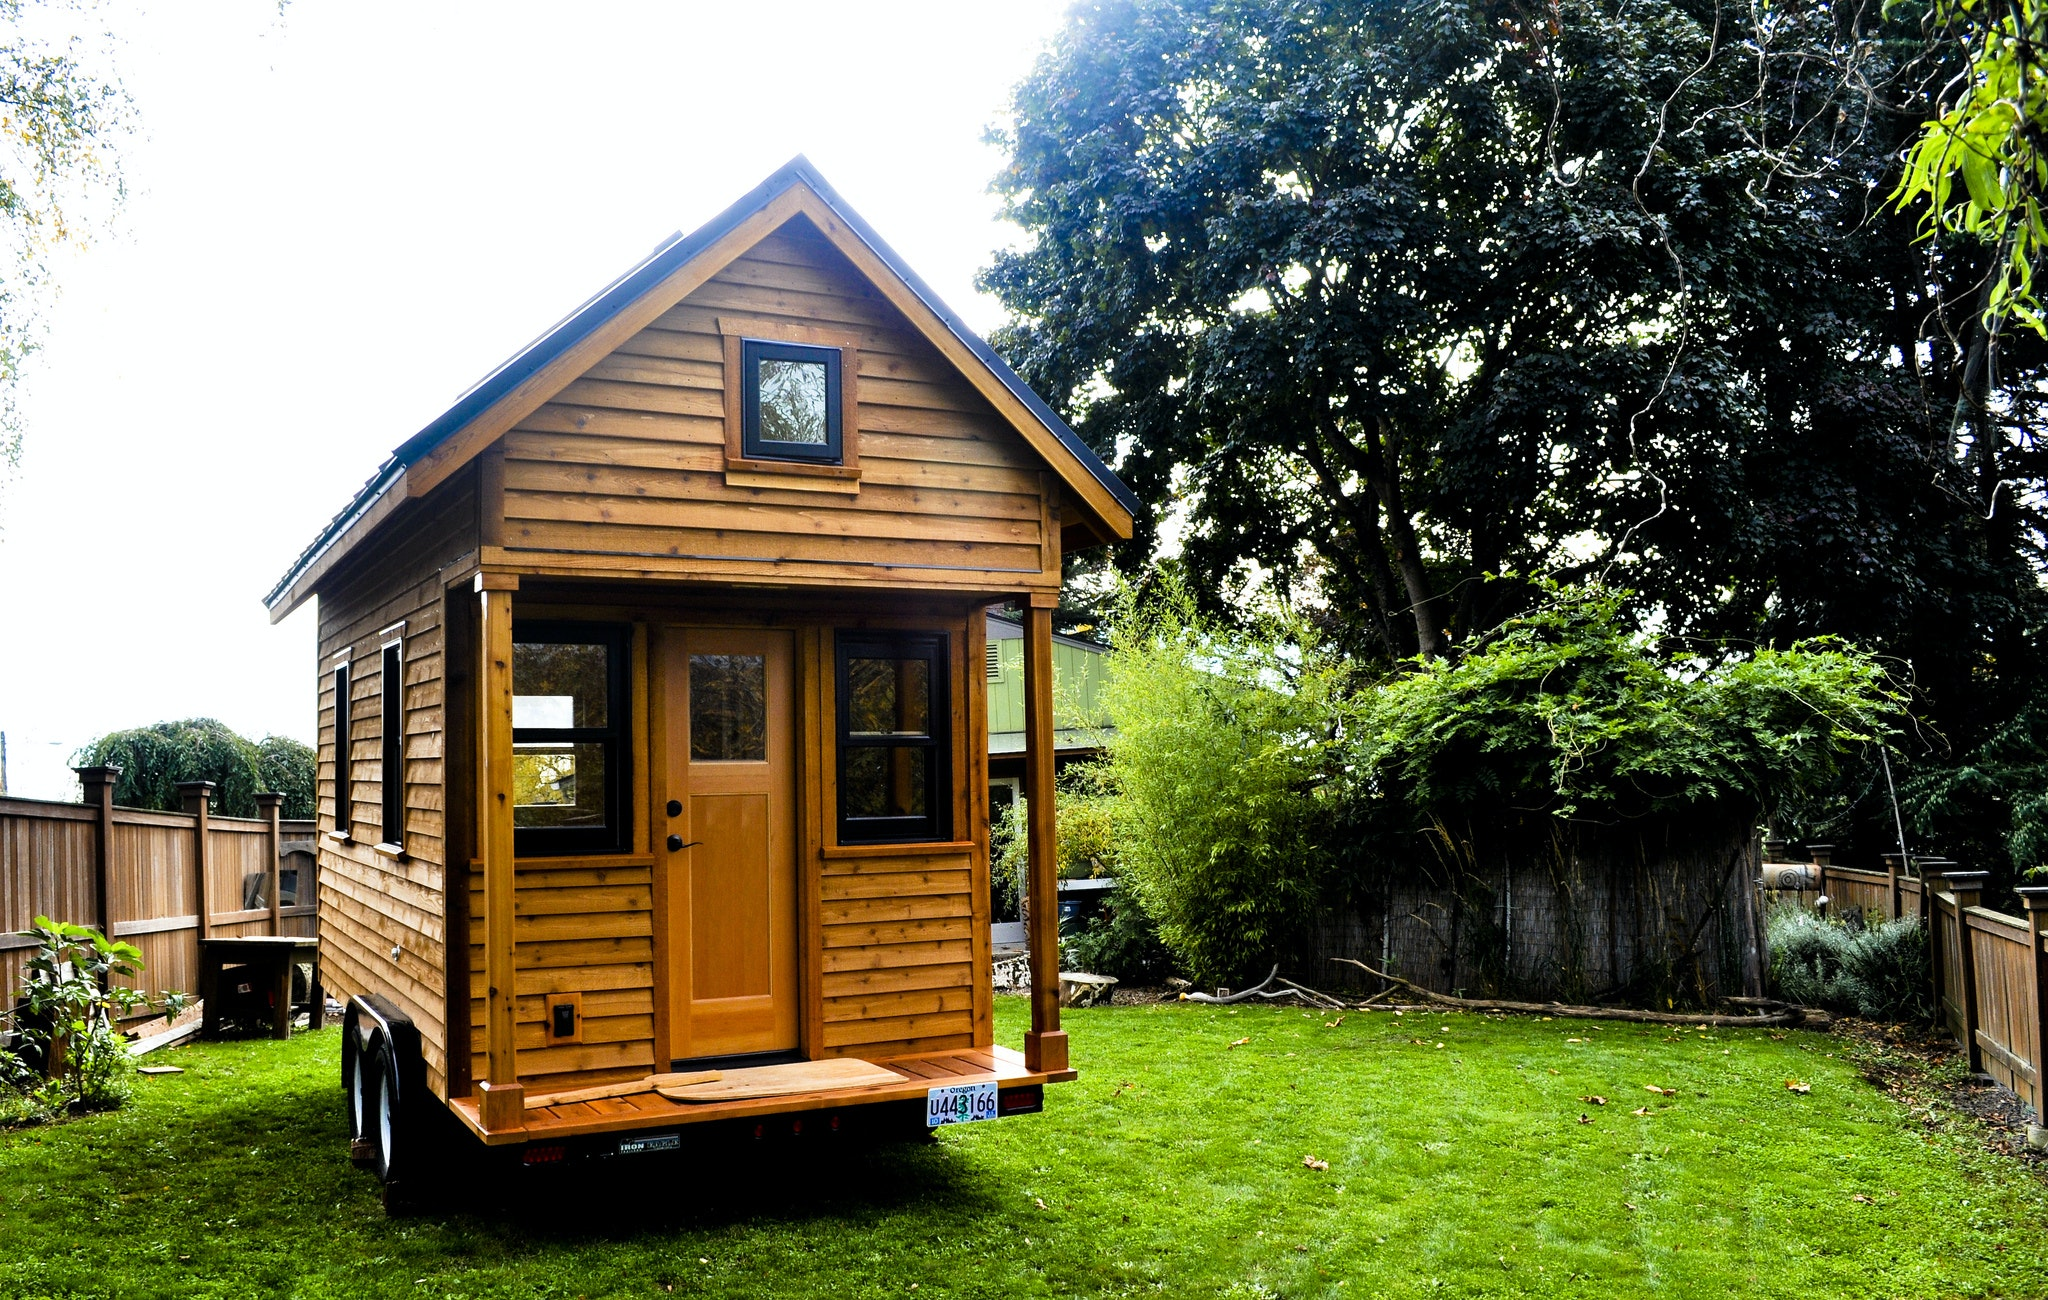 Smallest House In The World 2015 australians love tiny houses, so why aren't more of us living in them?